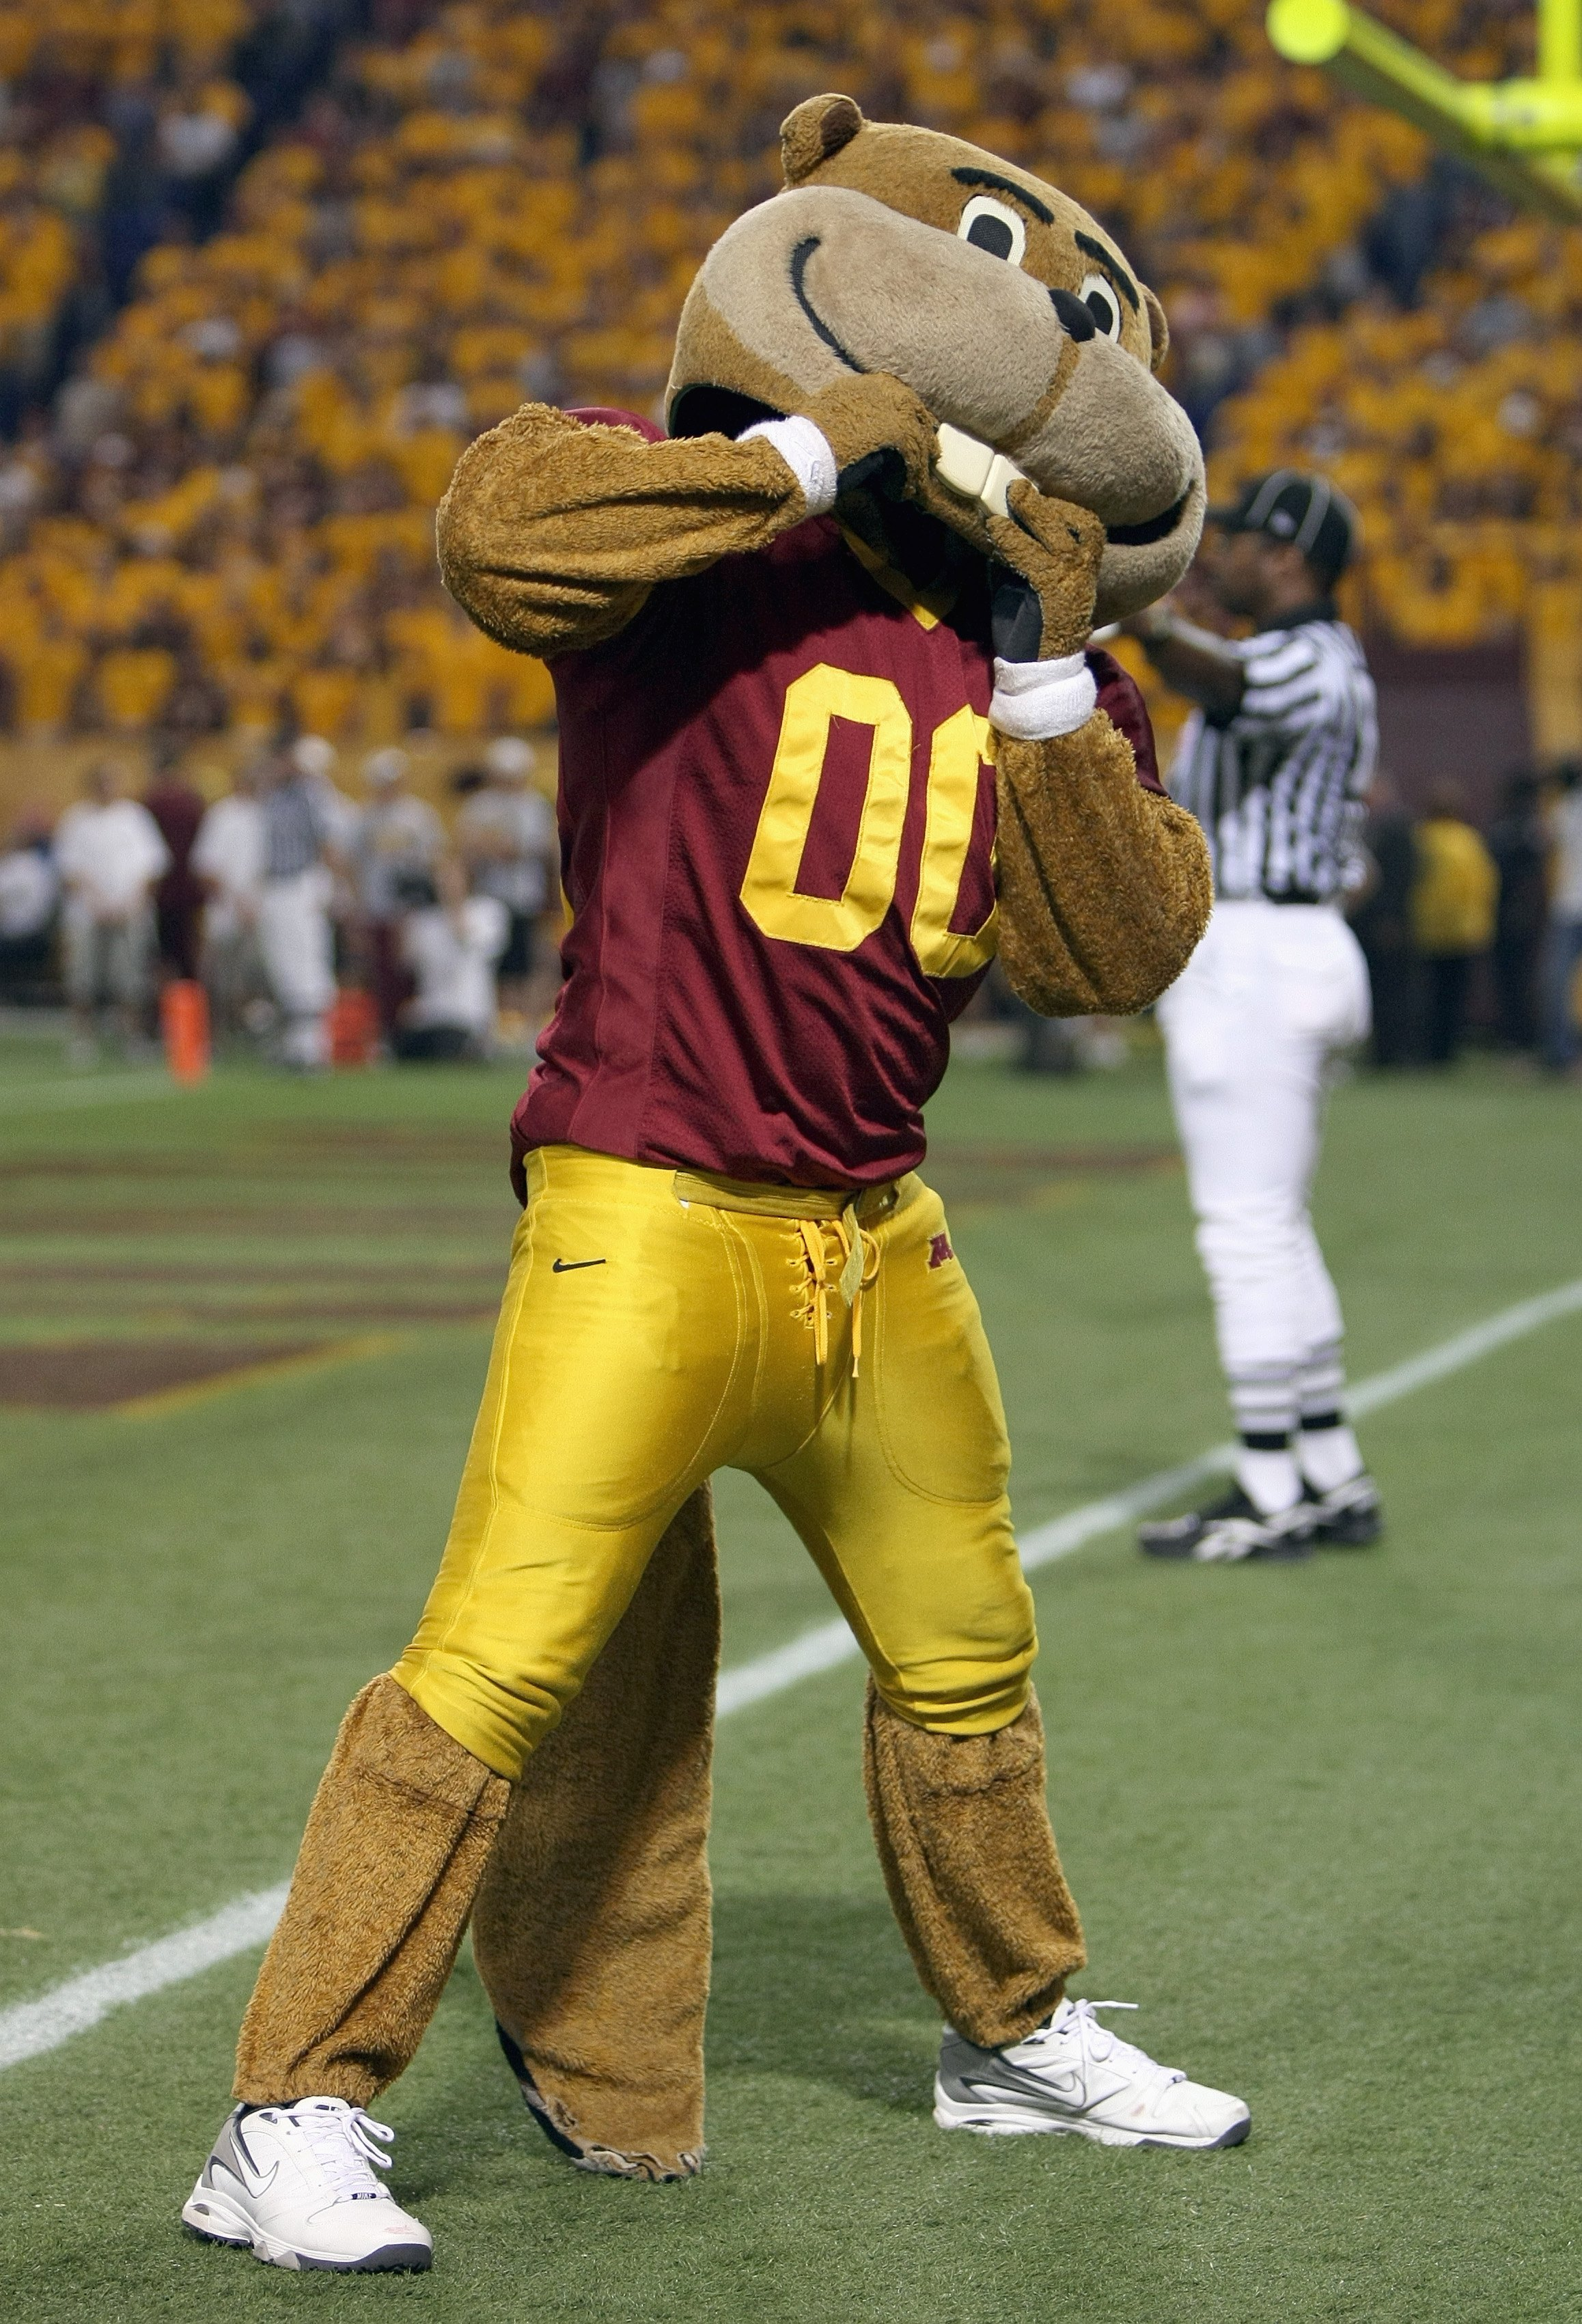 MINNEAPOLIS, MN - SEPTEMBER 08: Mascot Goldy Gopher of the Minnesota Golden cheers during the game against the Miami of Ohio Redhawks as Minnesota defeated Miami of Ohio 41-35 in triple overtime at the Metrodome on September 8, 2007 in Minneapolis, Minnes